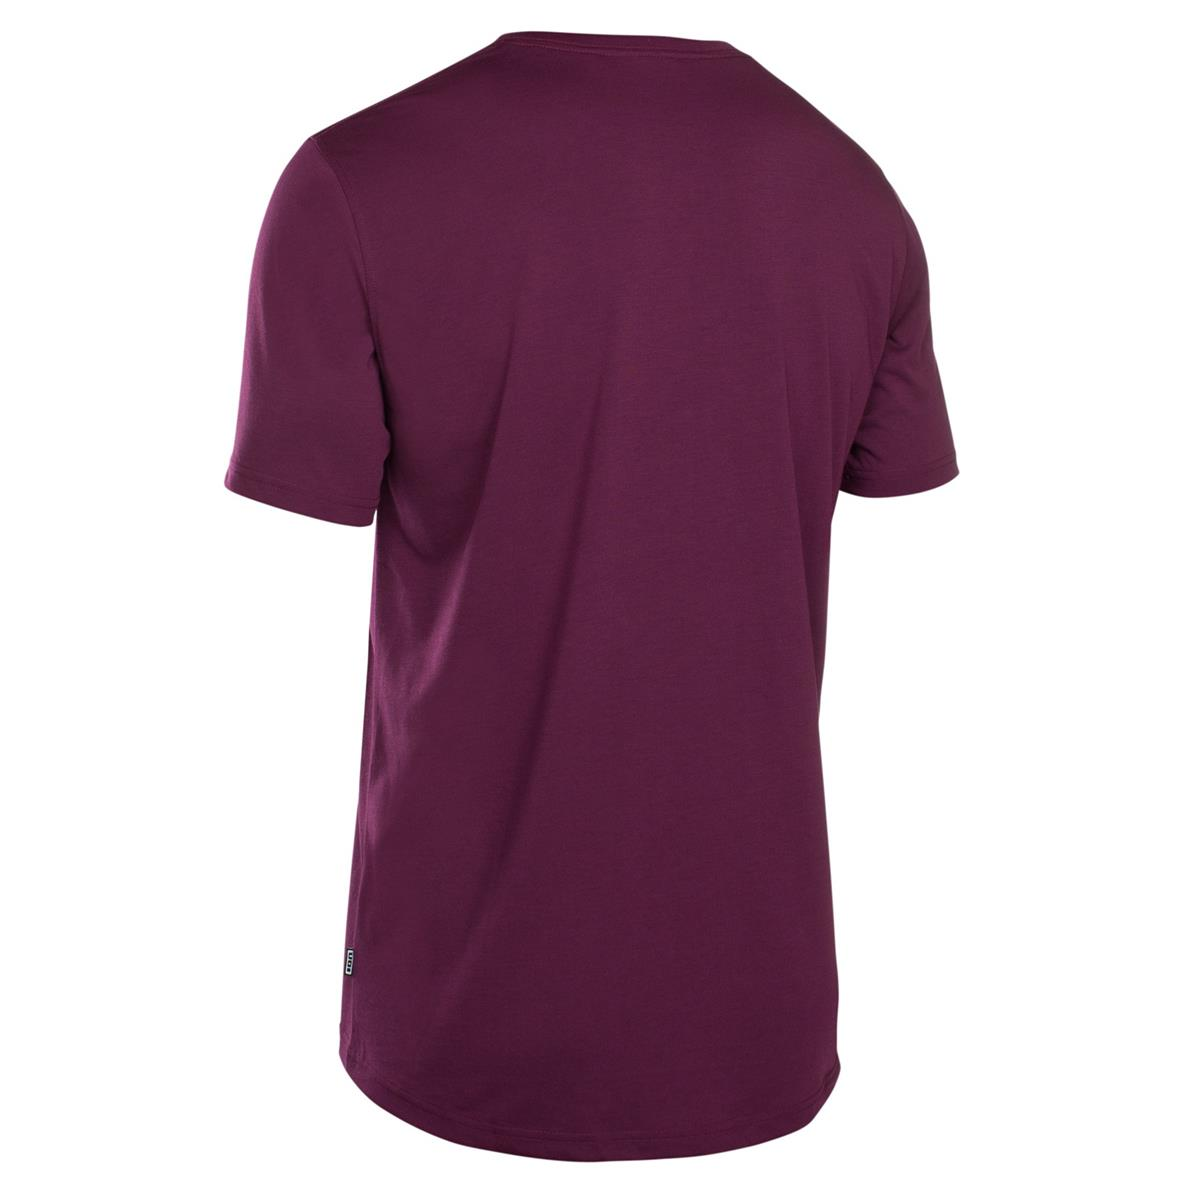 ION Freeride-Jersey DR Kurzarm Seek DR Freeride-Jersey Rosa Isover 0fc9cd